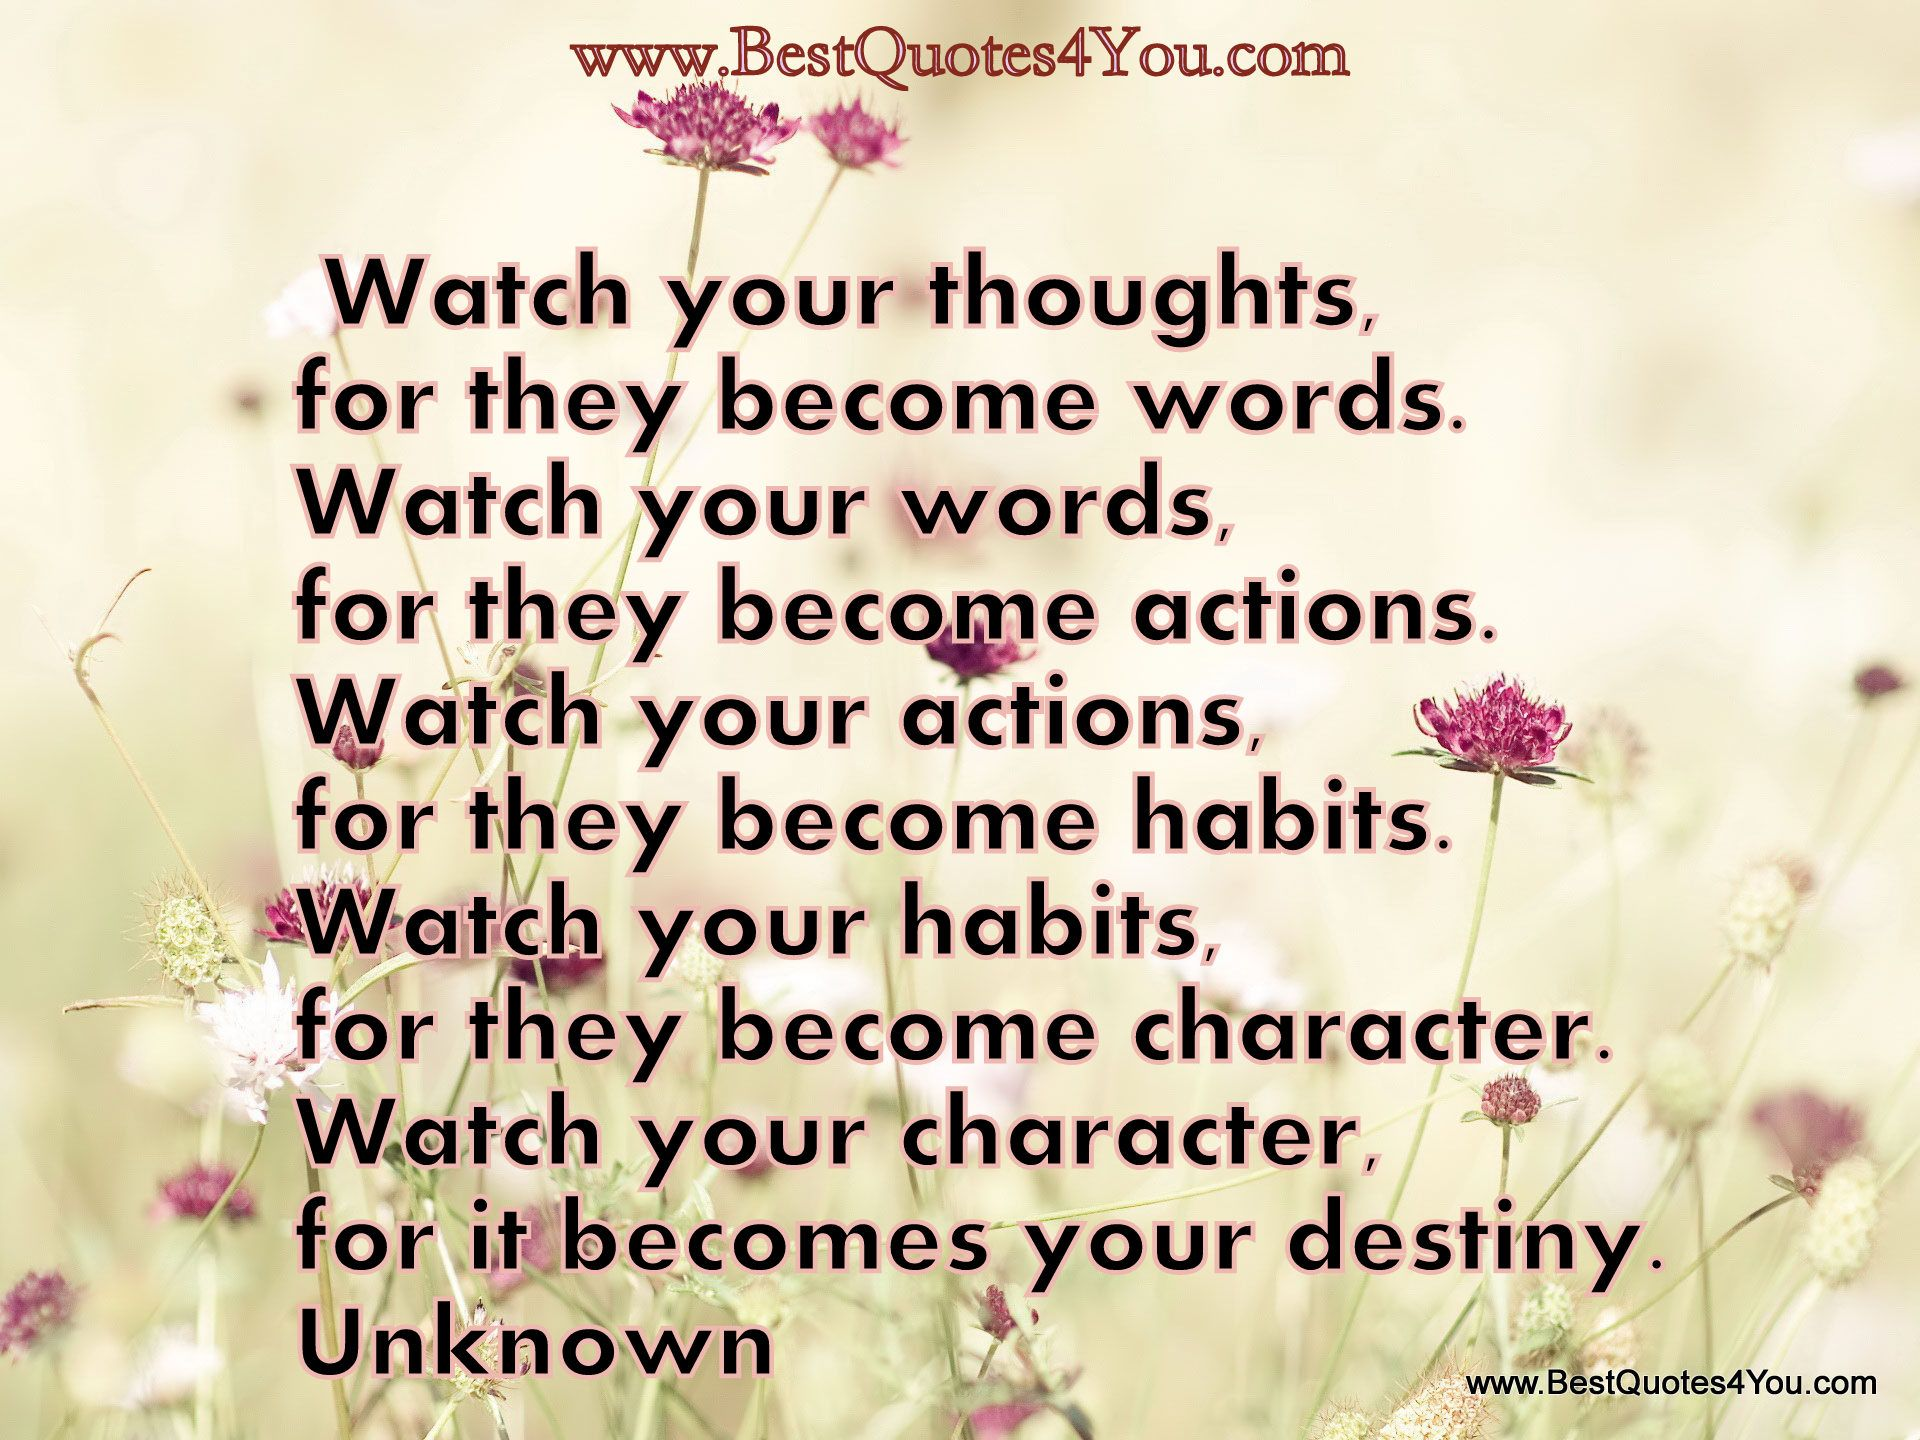 Watch Your Thoughts, For They Become Words. Watch Your